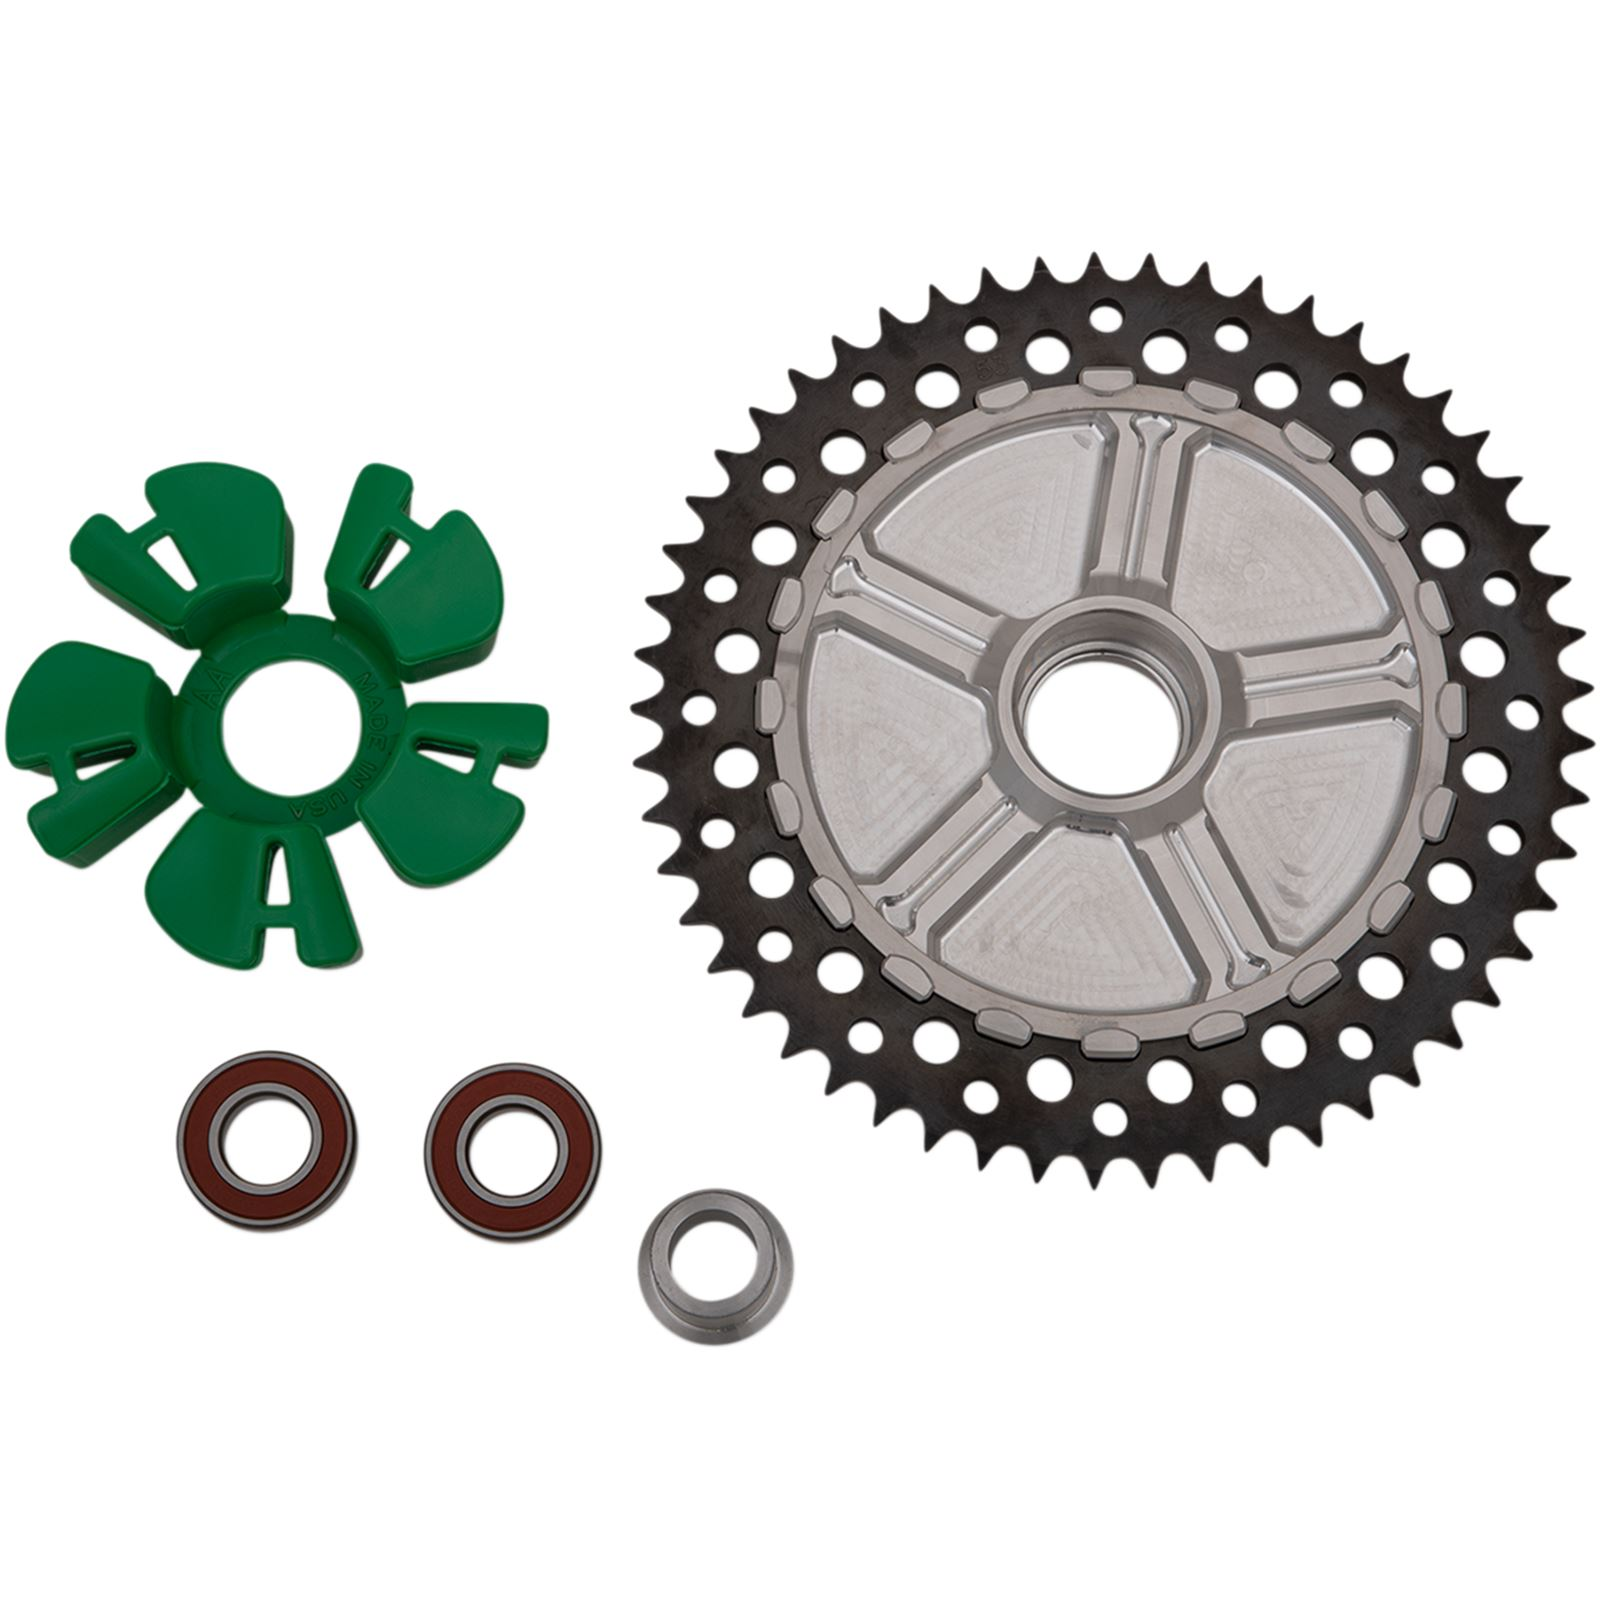 Alloy Art Cush Drive Sprocket - Black - Machined - 53-Tooth